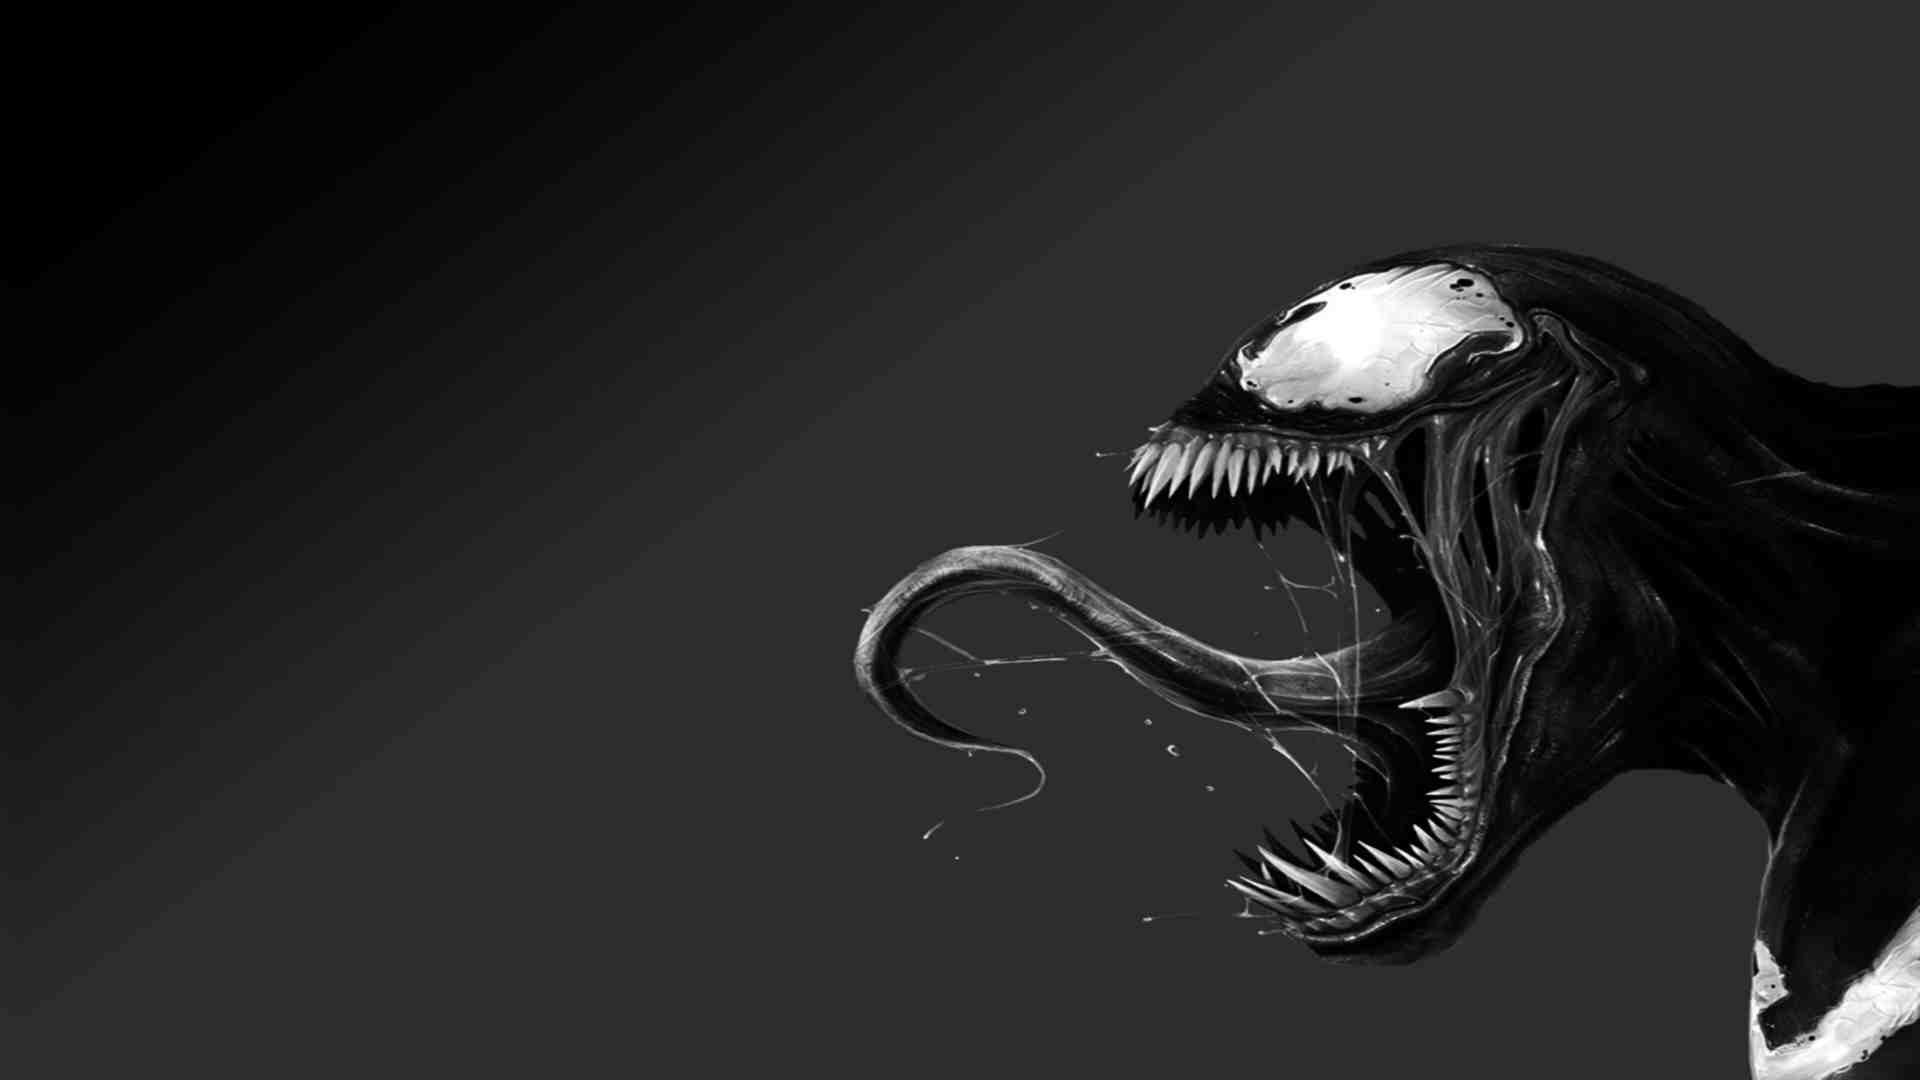 1920x1080 Comics Venom Wallpaper  Comics, Venom, Spiderman, Marvel .